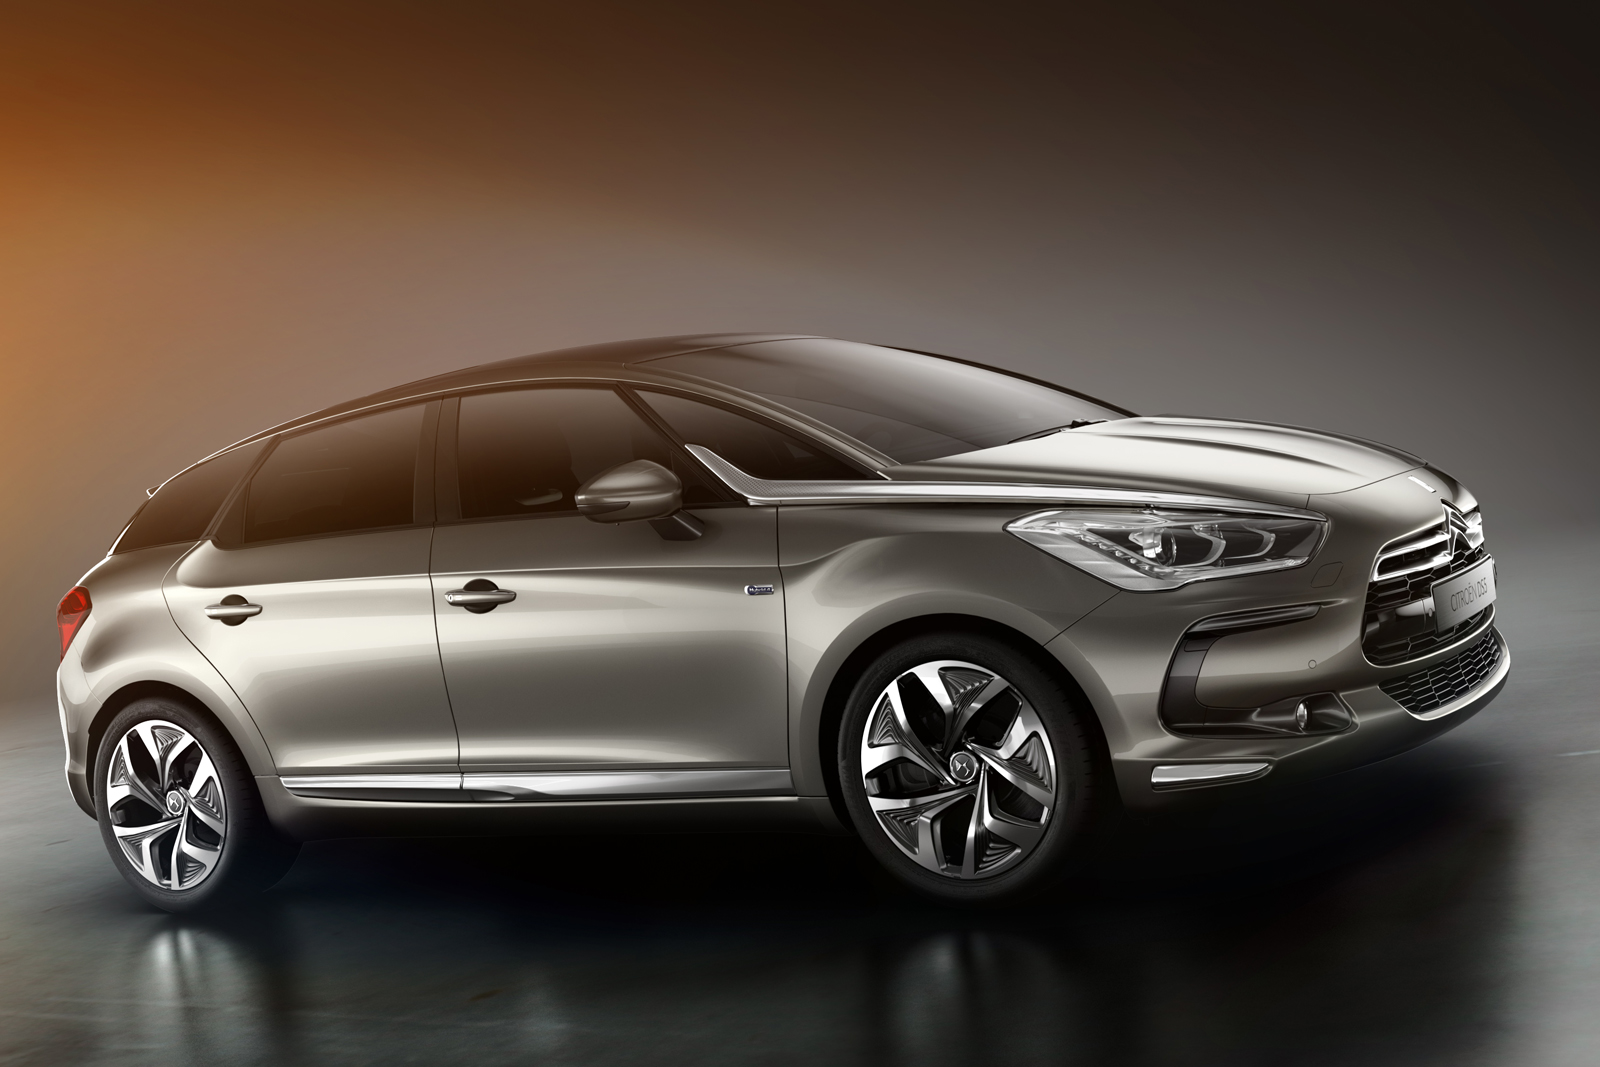 Citroen DS5 Crossover Side Photos Info Wallpapers Download Free